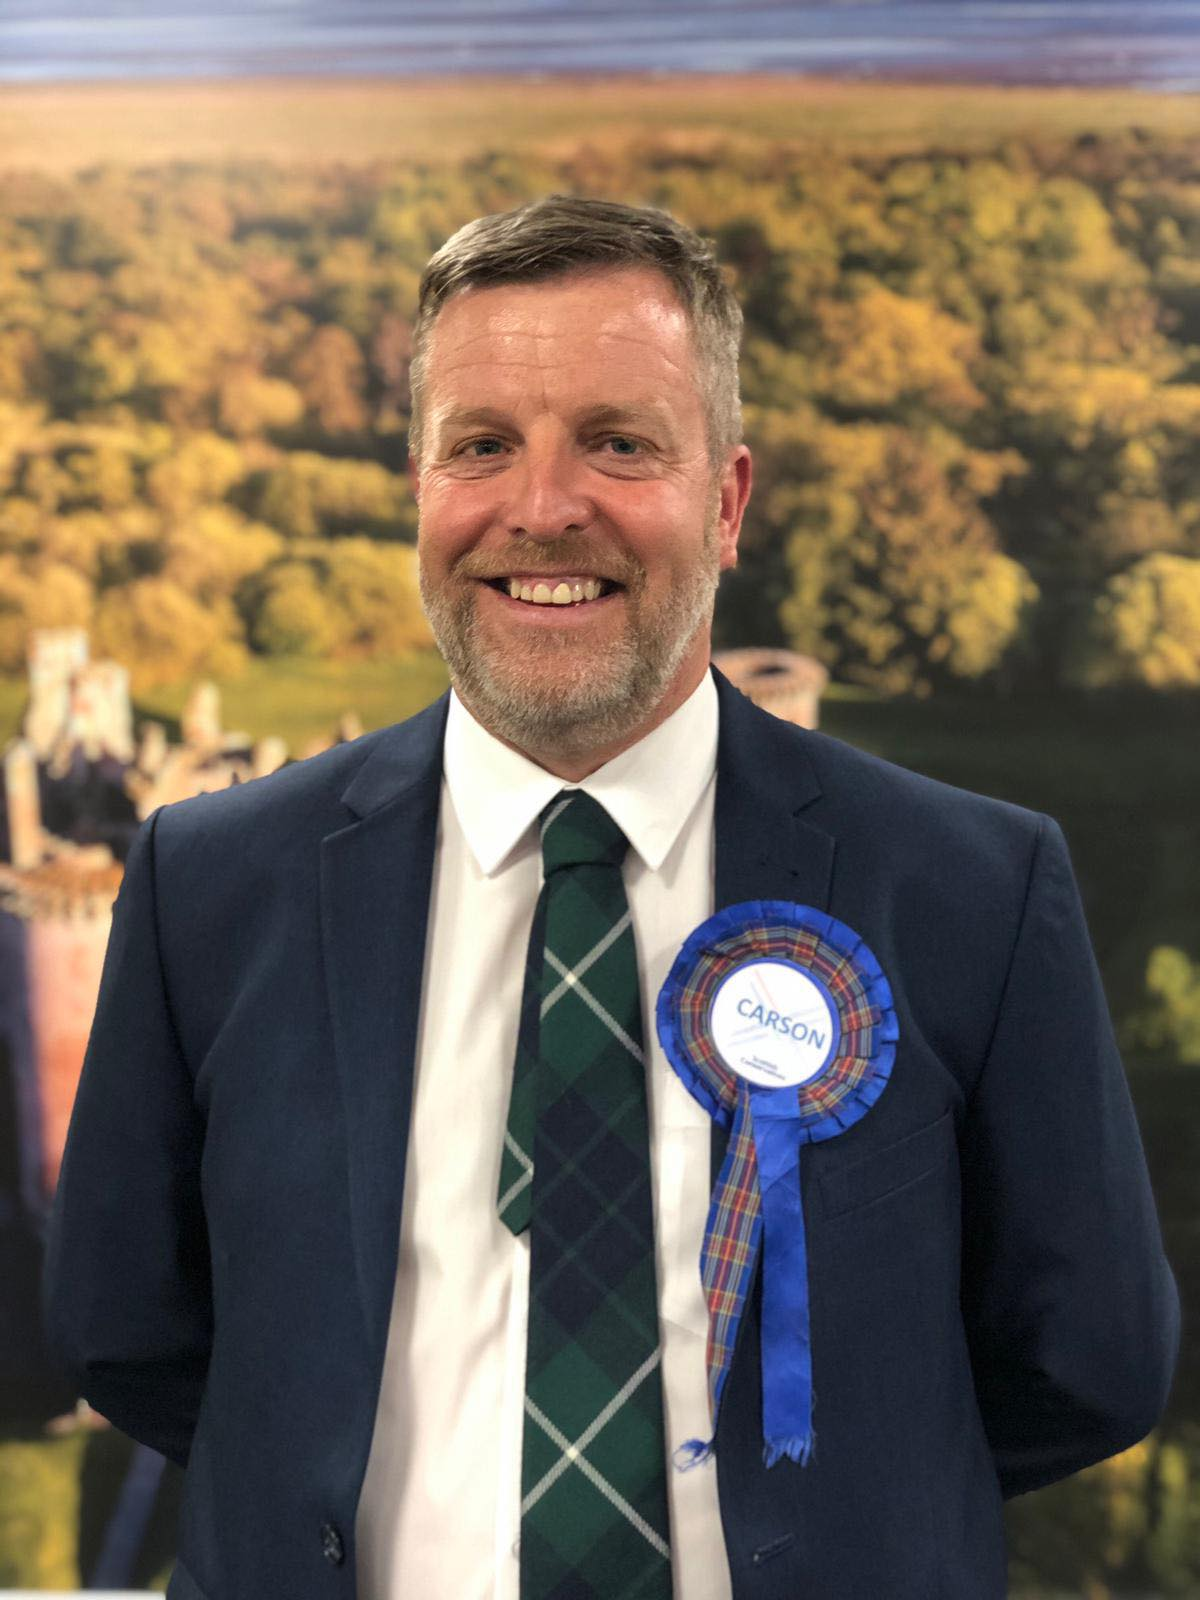 Finlay Carson reelected as MSP for Galloway and West Dumfries